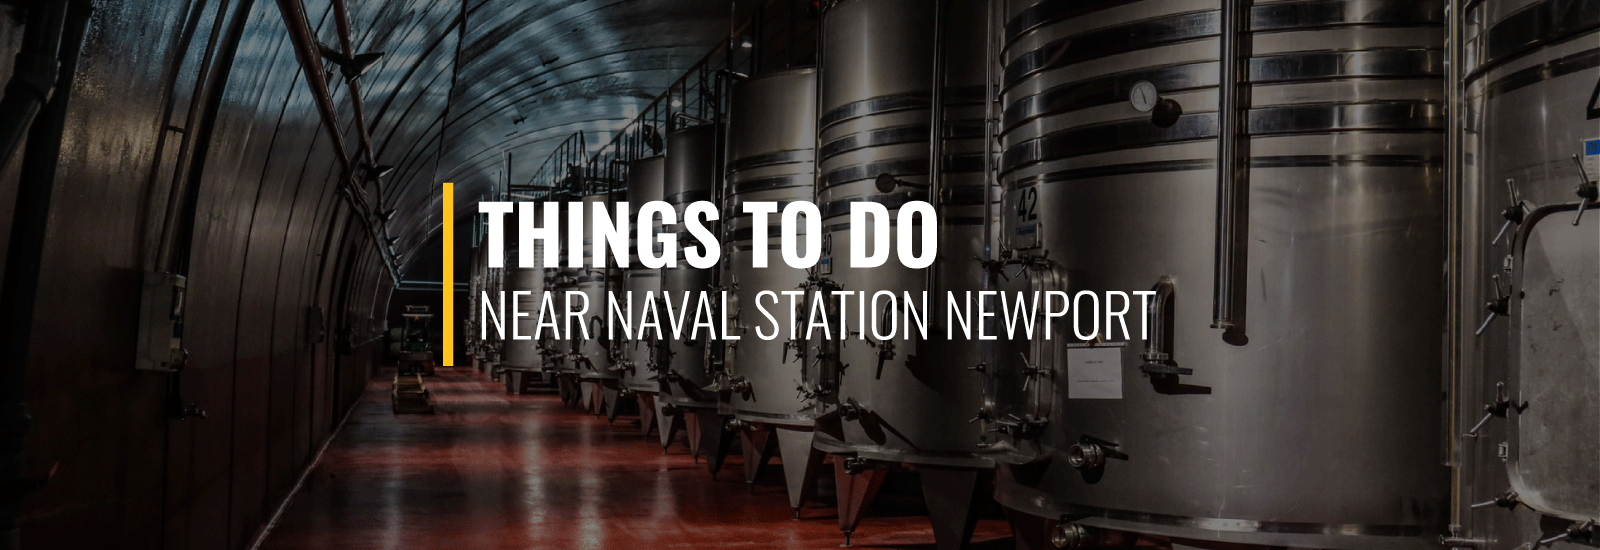 naval Station Newport Things to Do